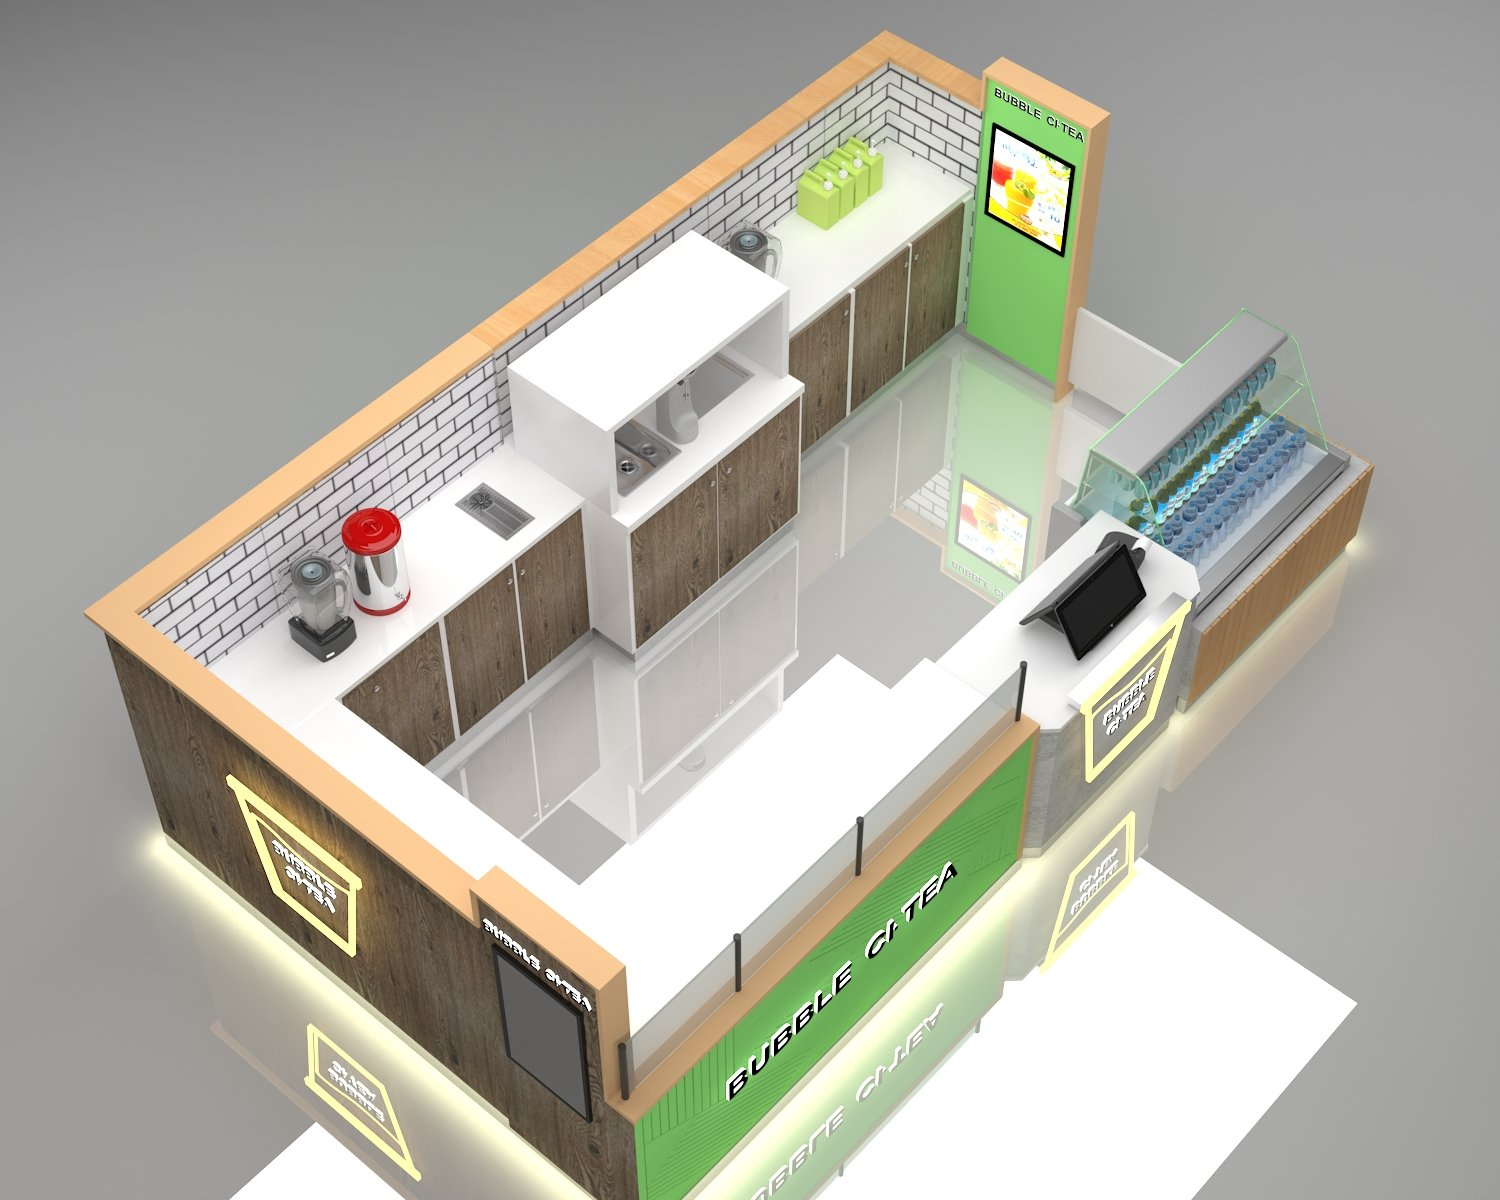 Bubble tea kiosk 3 d design drawing